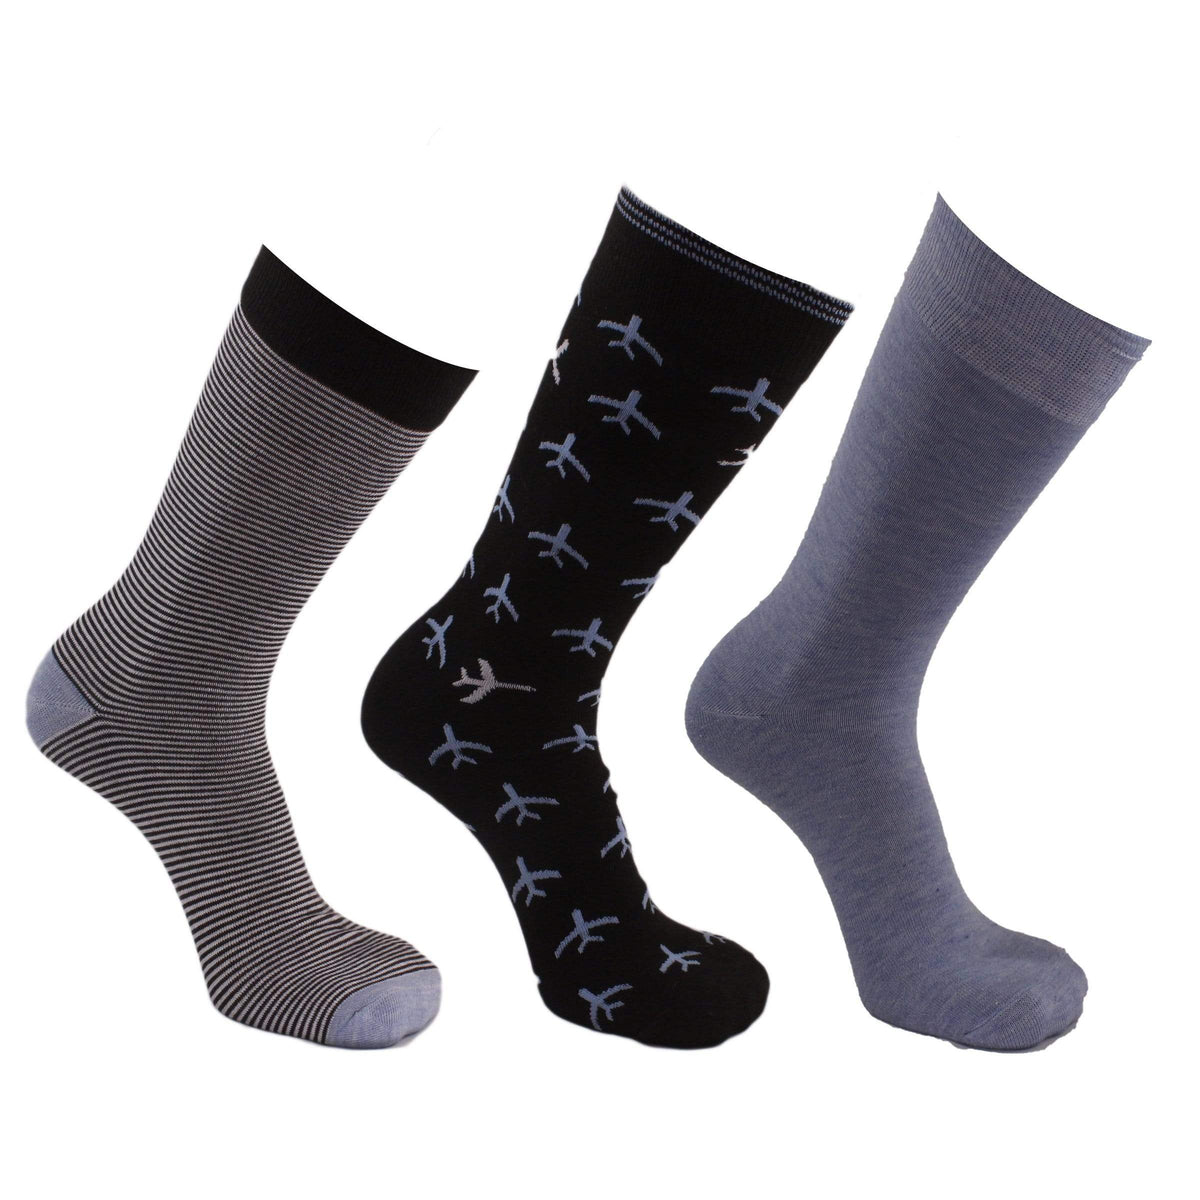 Airplane 3 Pack Crew Socks